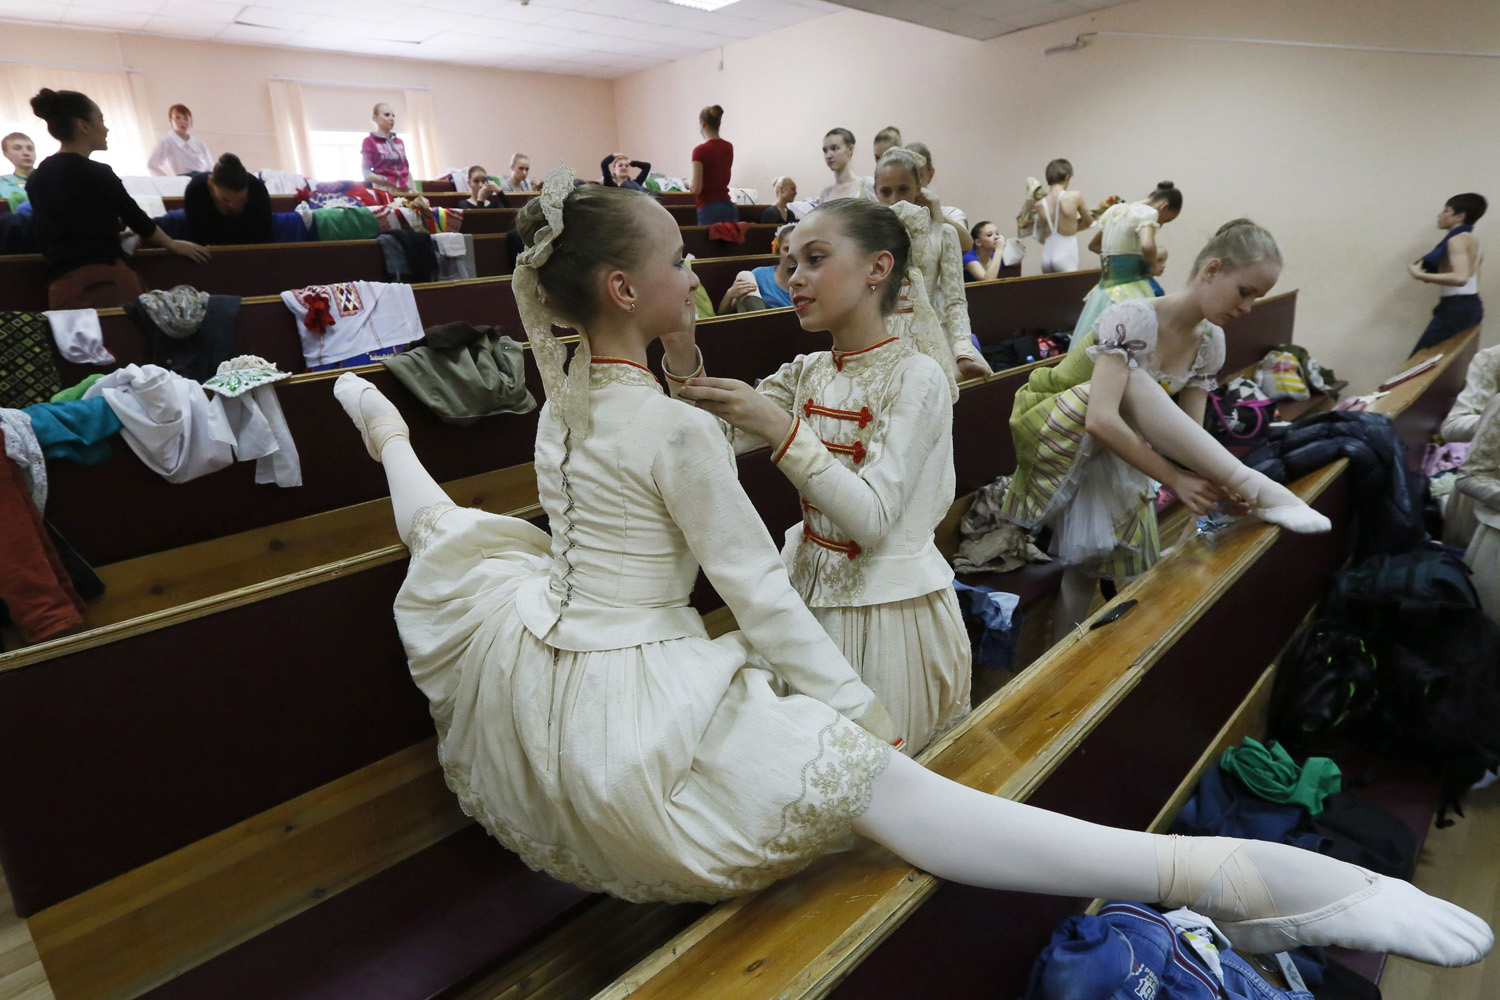 May 20, 2014. Students of the Krasnoyarsk choreographic college prepare backstage before a dress rehearsal of a performance by graduates of the college at the State Theatre of Opera and Ballet in Russia's Siberian city of Krasnoyarsk.